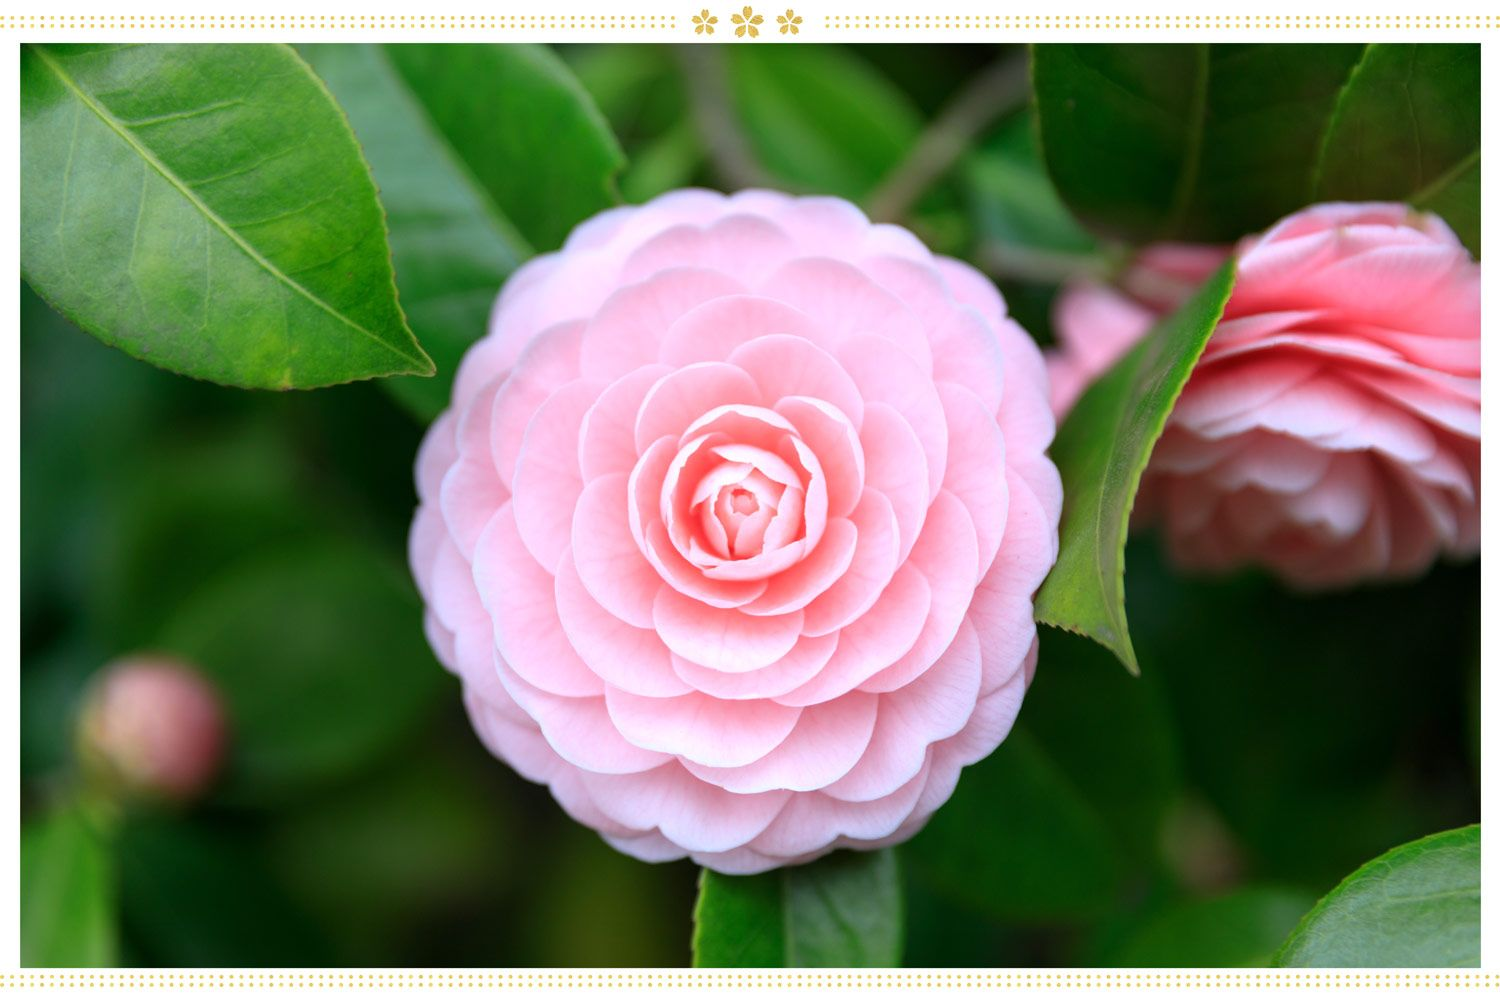 15 Japanese Flower Meanings And Where To Find Them Proflowers Blog In 2020 Japanese Flower Names Flower Meanings Japanese Flowers